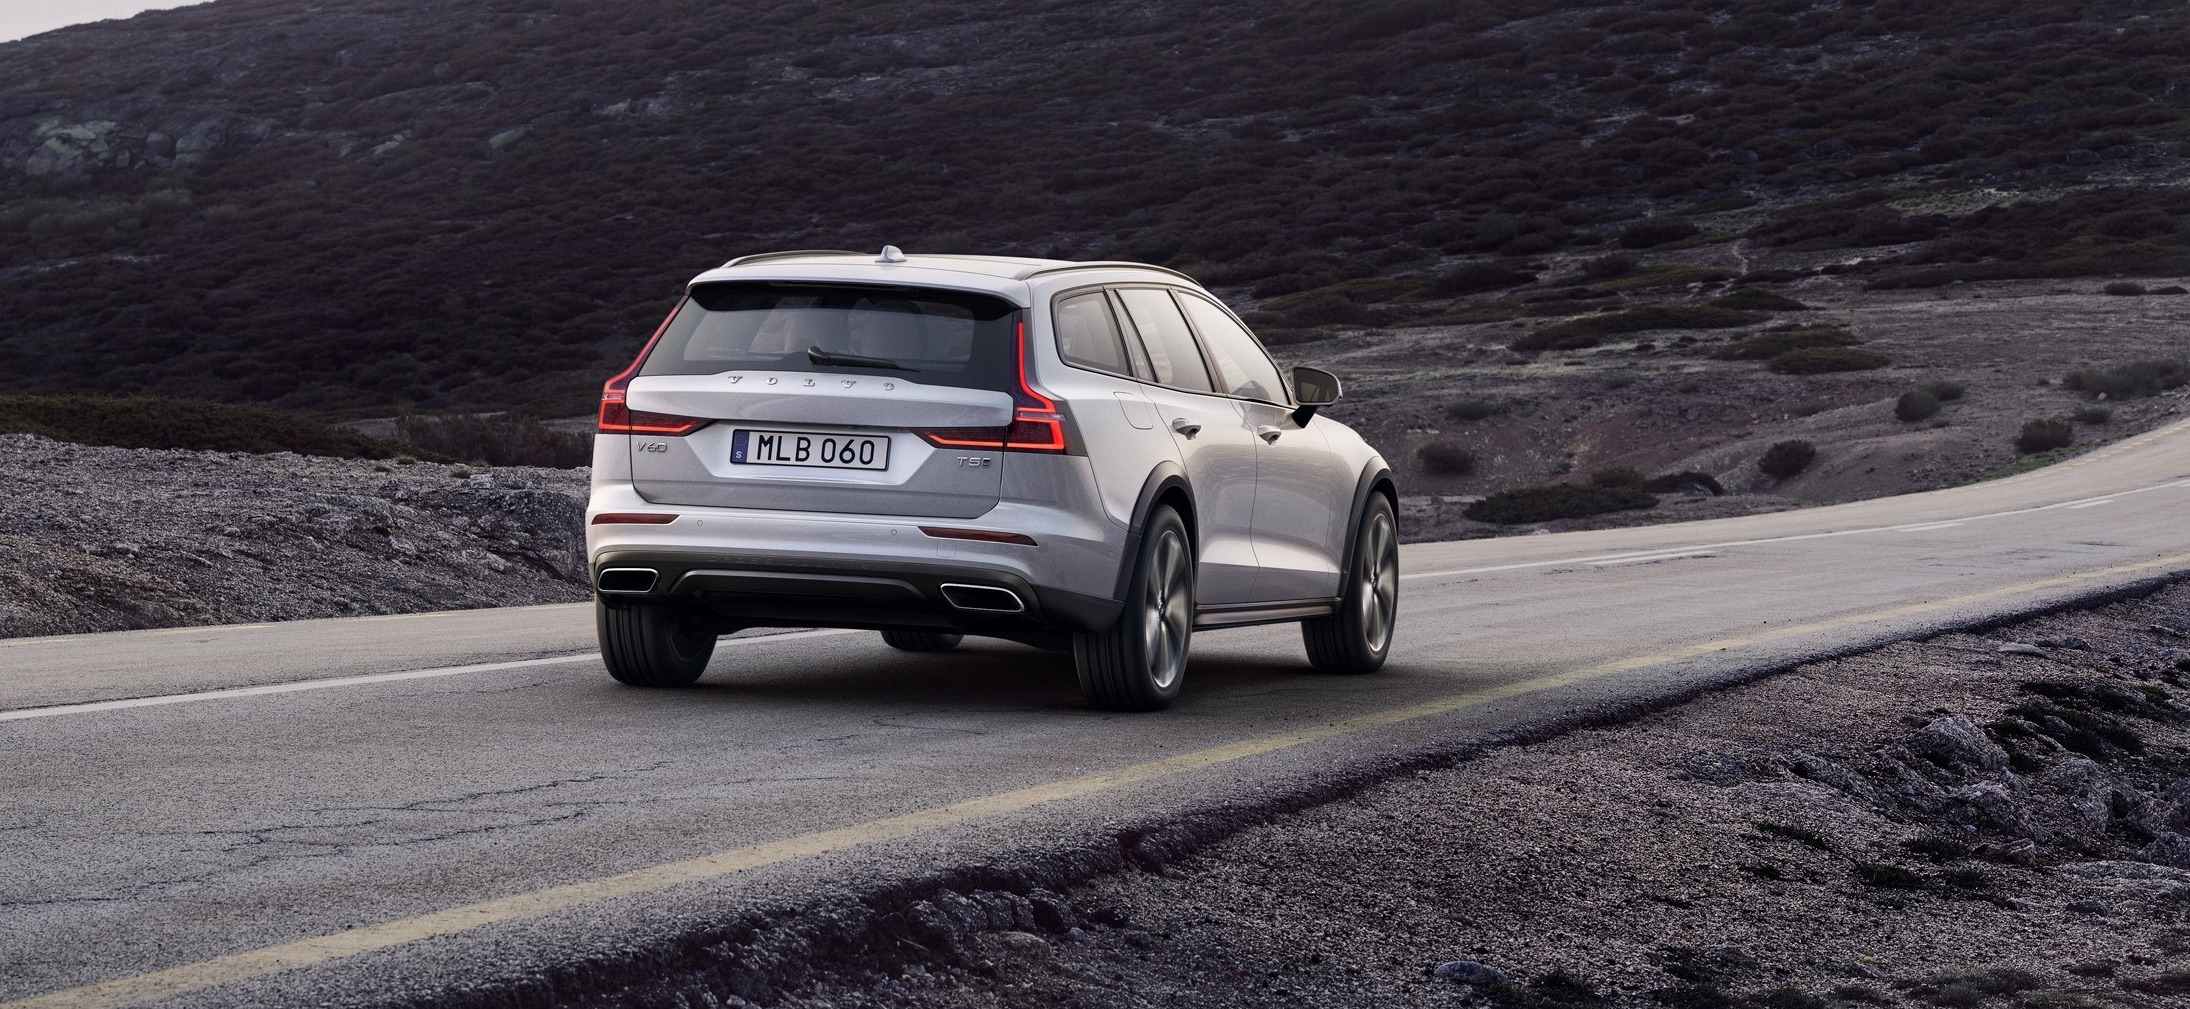 volvo_v60_cross_country_1.jpg